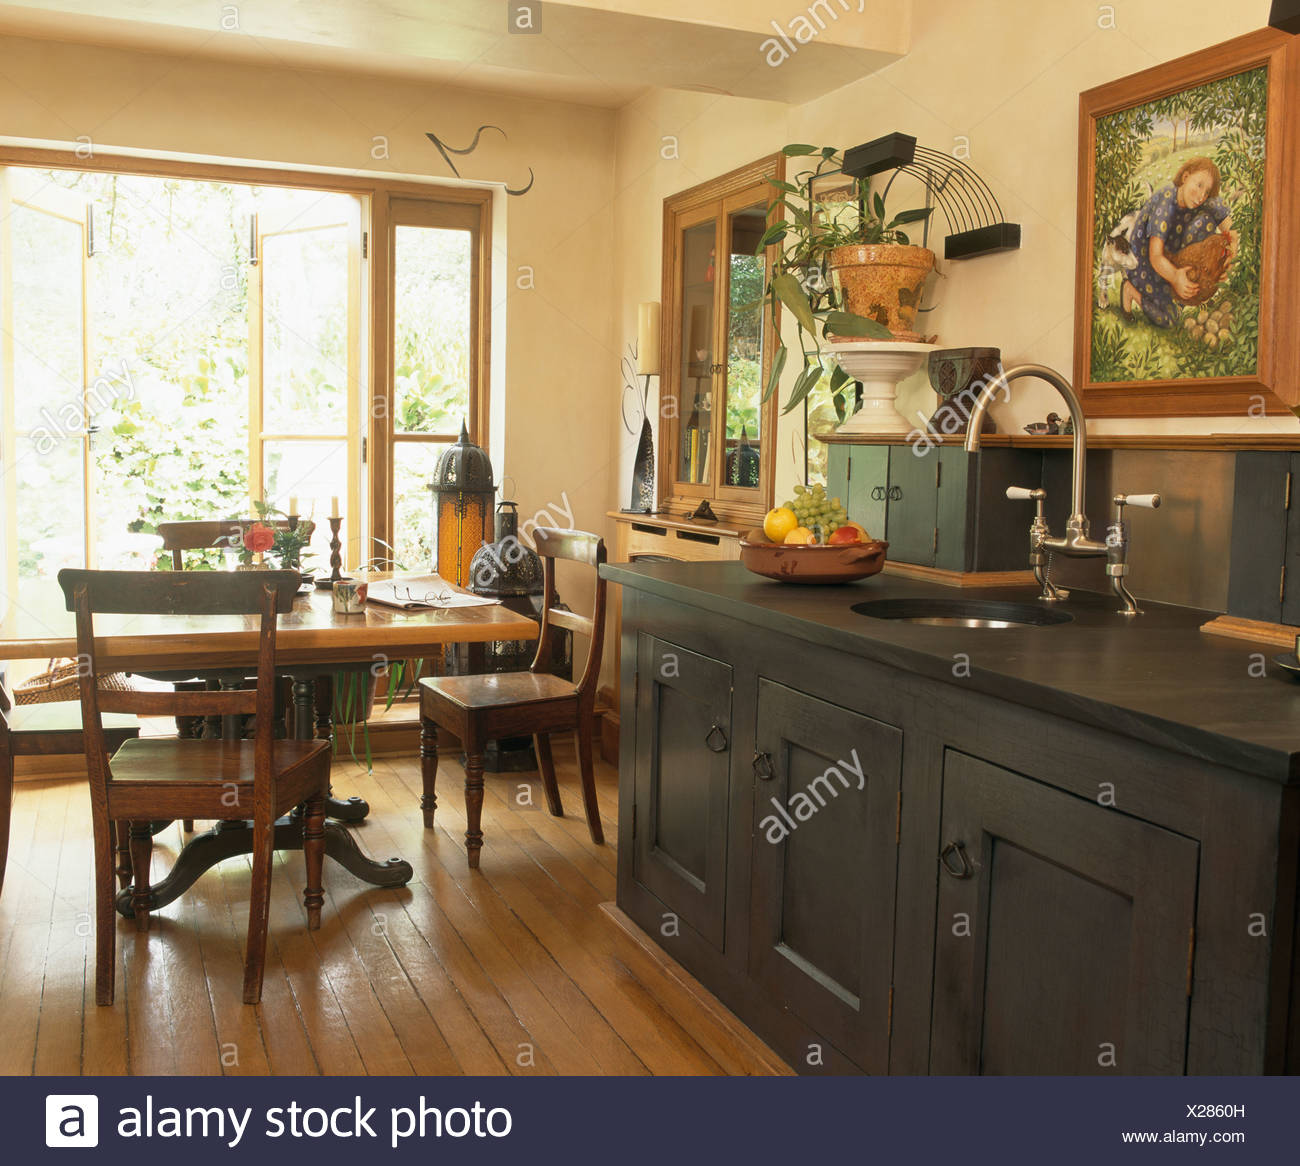 Antique Table And Chairs In Cream Country Kitchen With Reclaimed Oak Flooring And Dark Gray Kitchen Unit With Slate Worktop Stock Photo Alamy